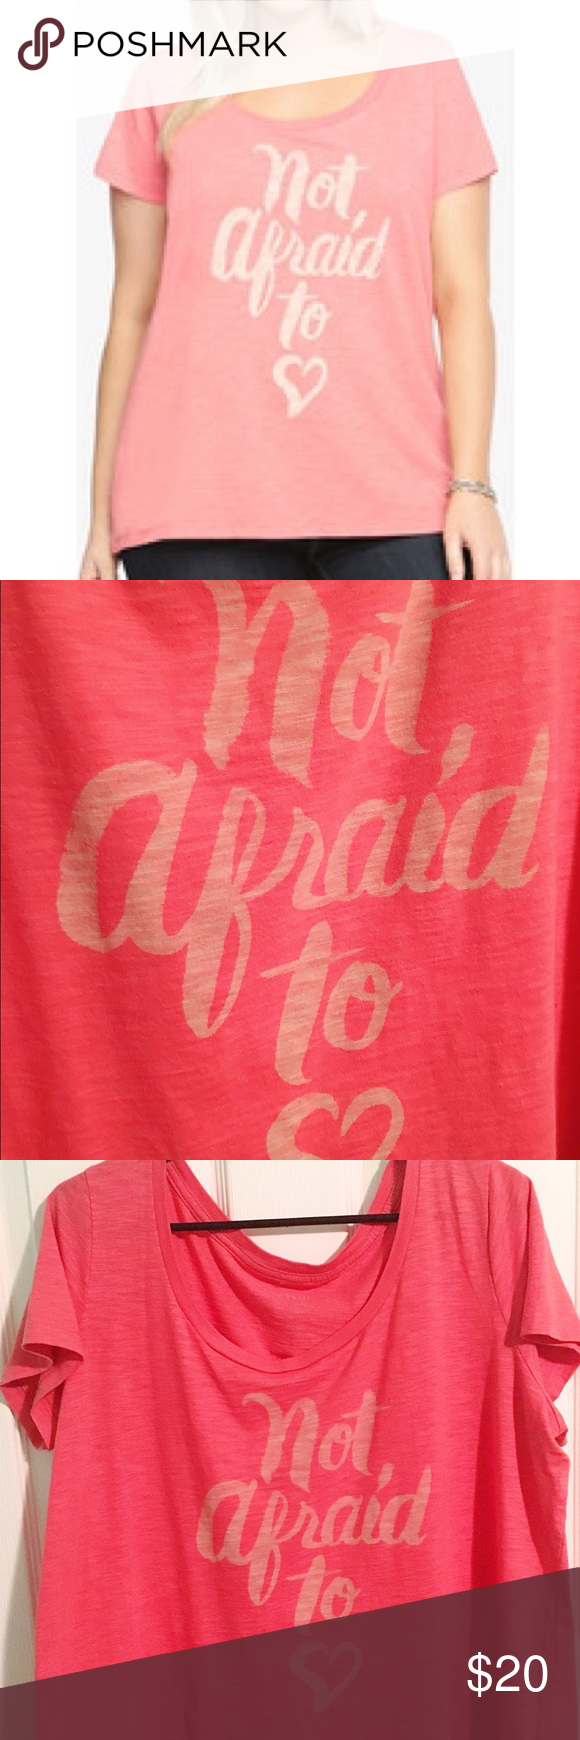 NWOT Not Afraid to ❤️ Graphic Tee Never worn but took the tags off. Super cute, coral. Very cute! Smoke free and dog-friendly home. More torrid Tops Tees - Short Sleeve